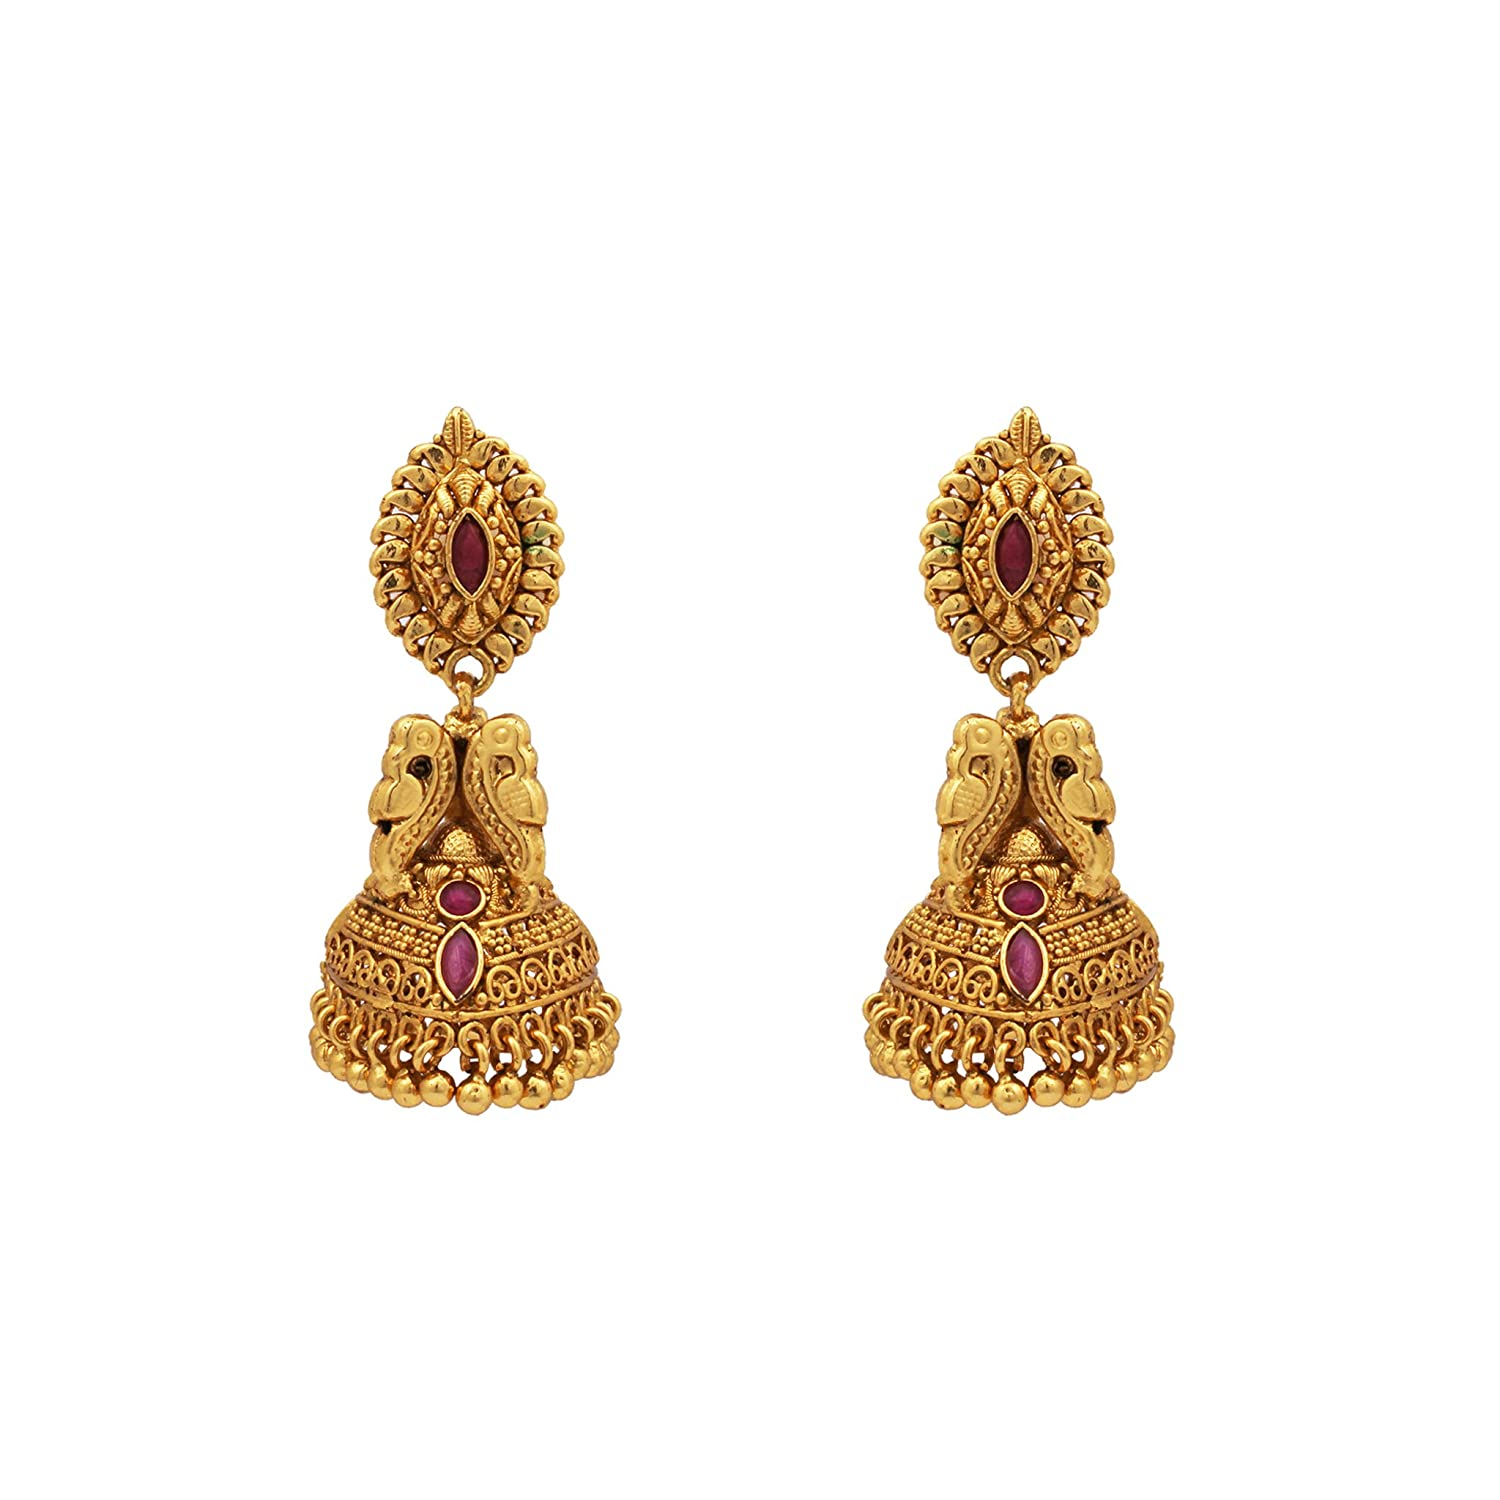 Best Of New Gold Designs Indian Jewellery | Jewellry\'s Website